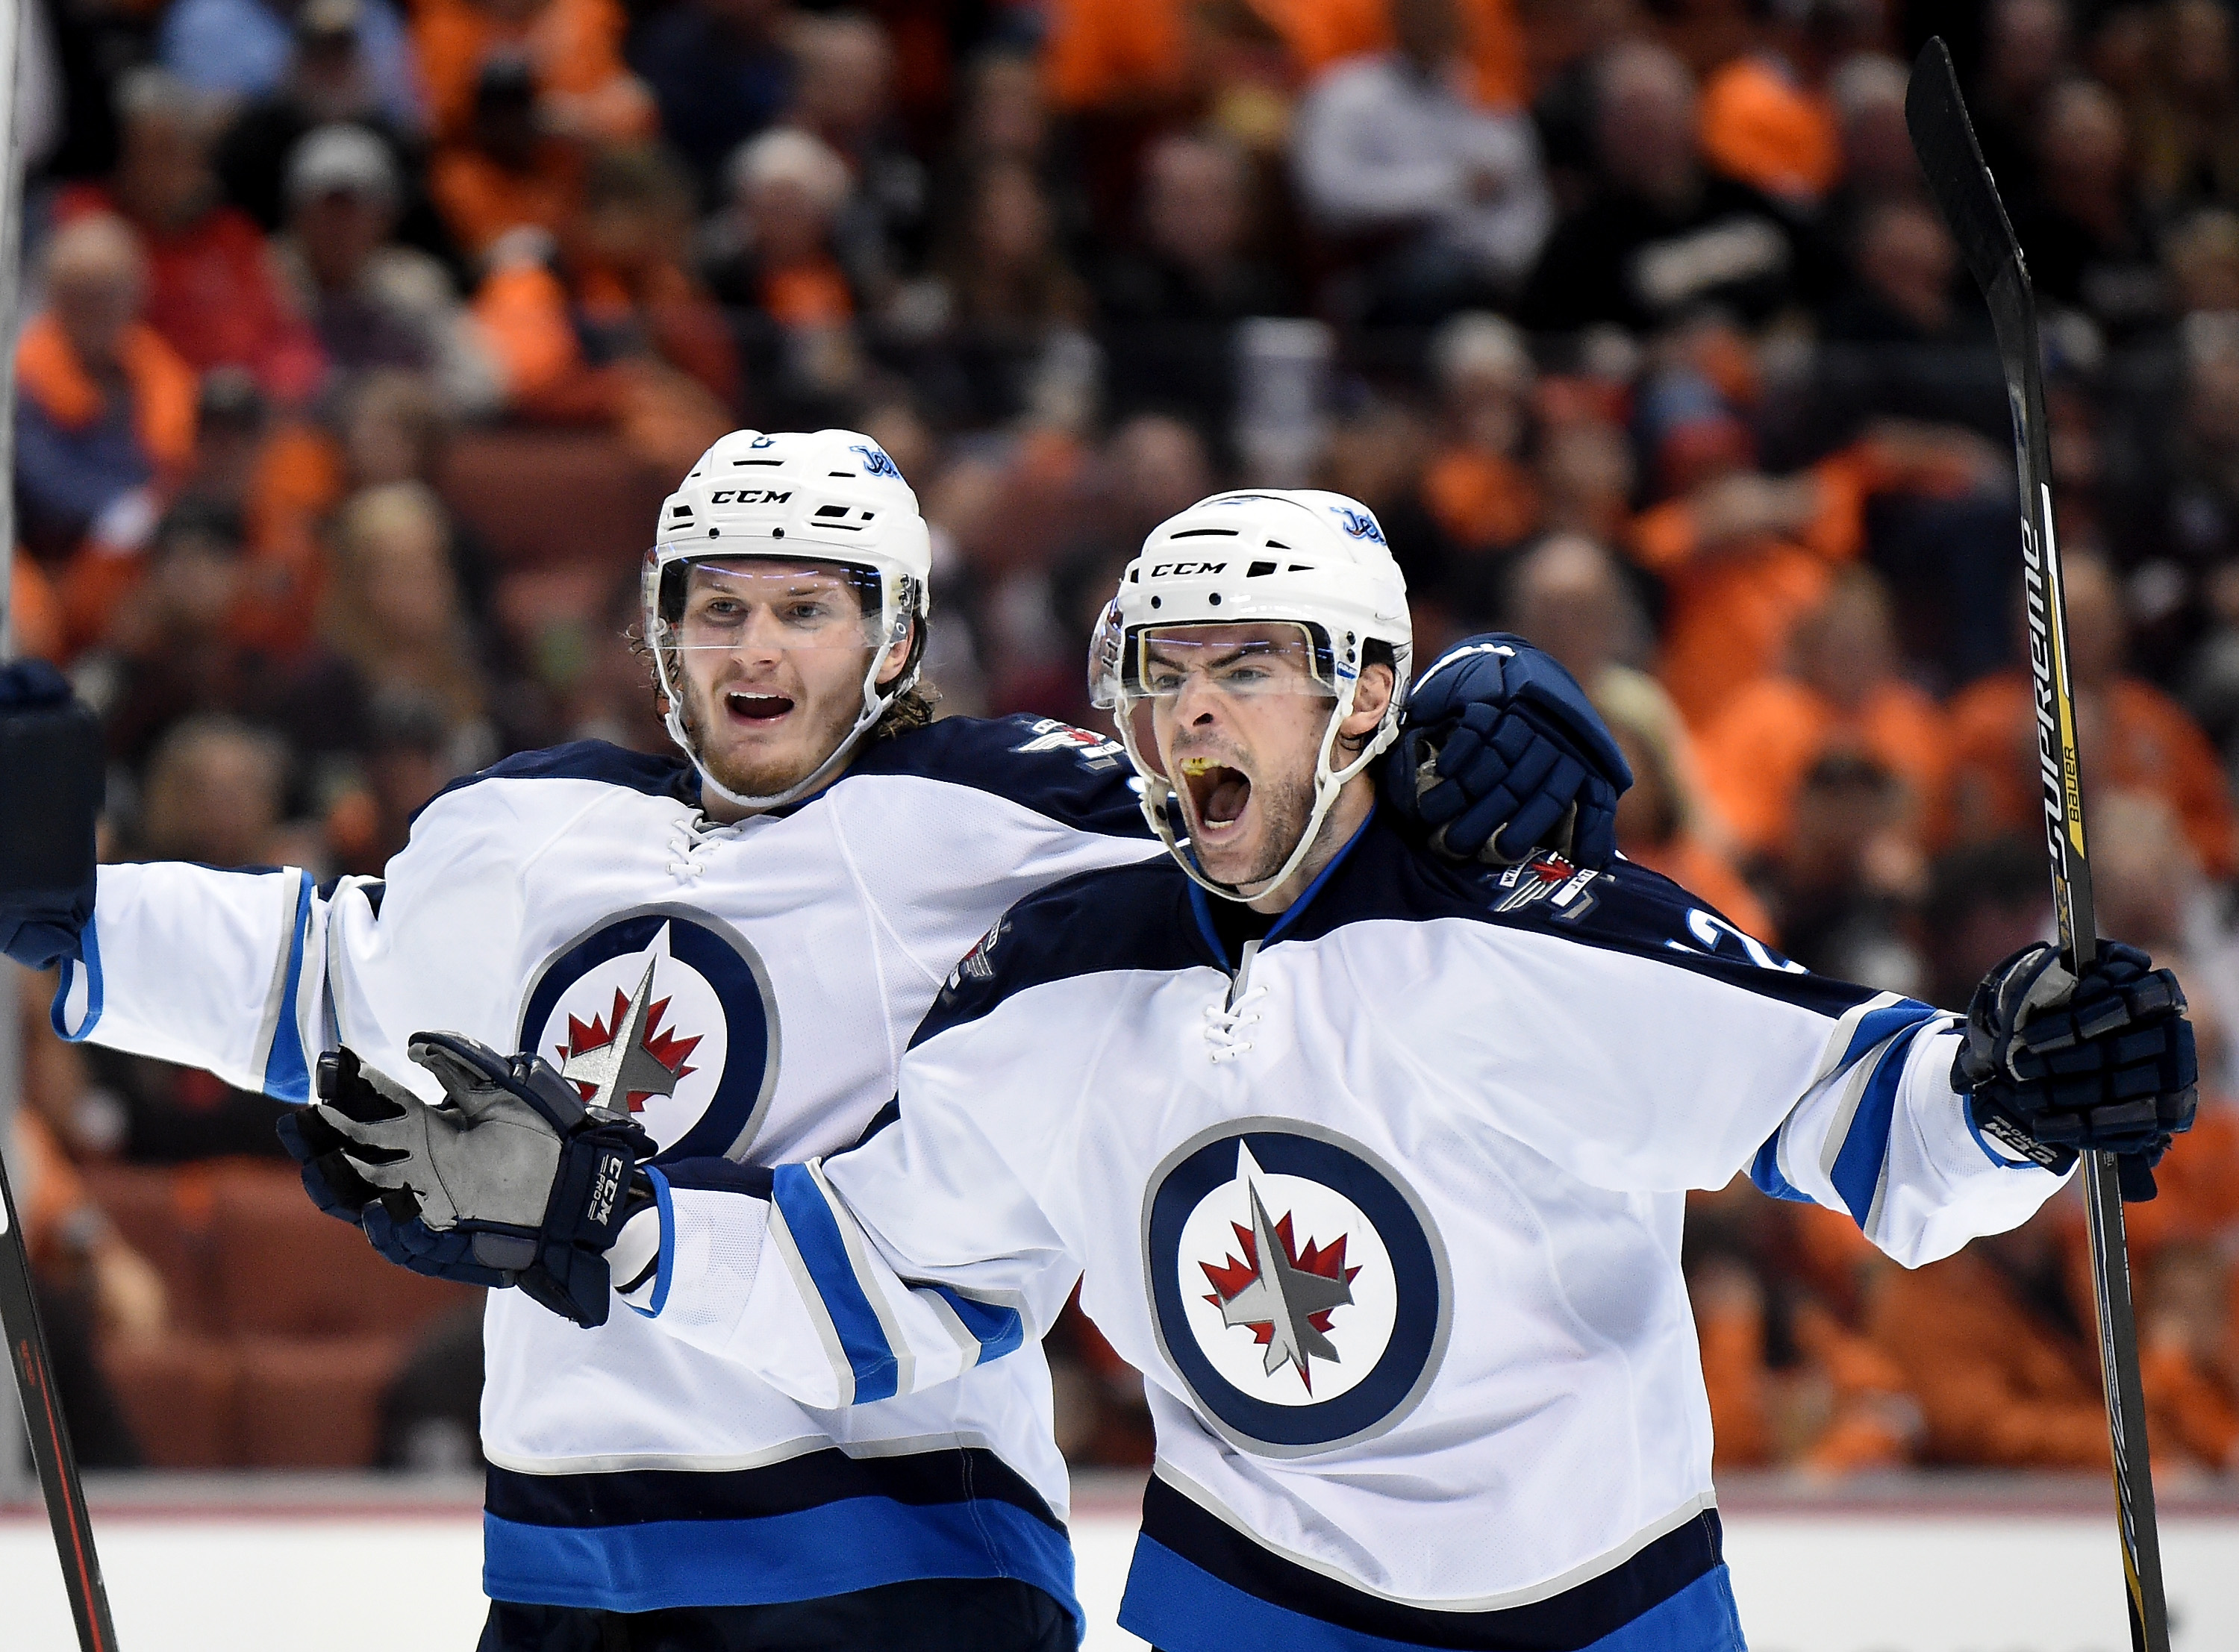 Drew Stafford was pumped to score a goal for the Jets in their playoff series with Anaheim (Getty Images).